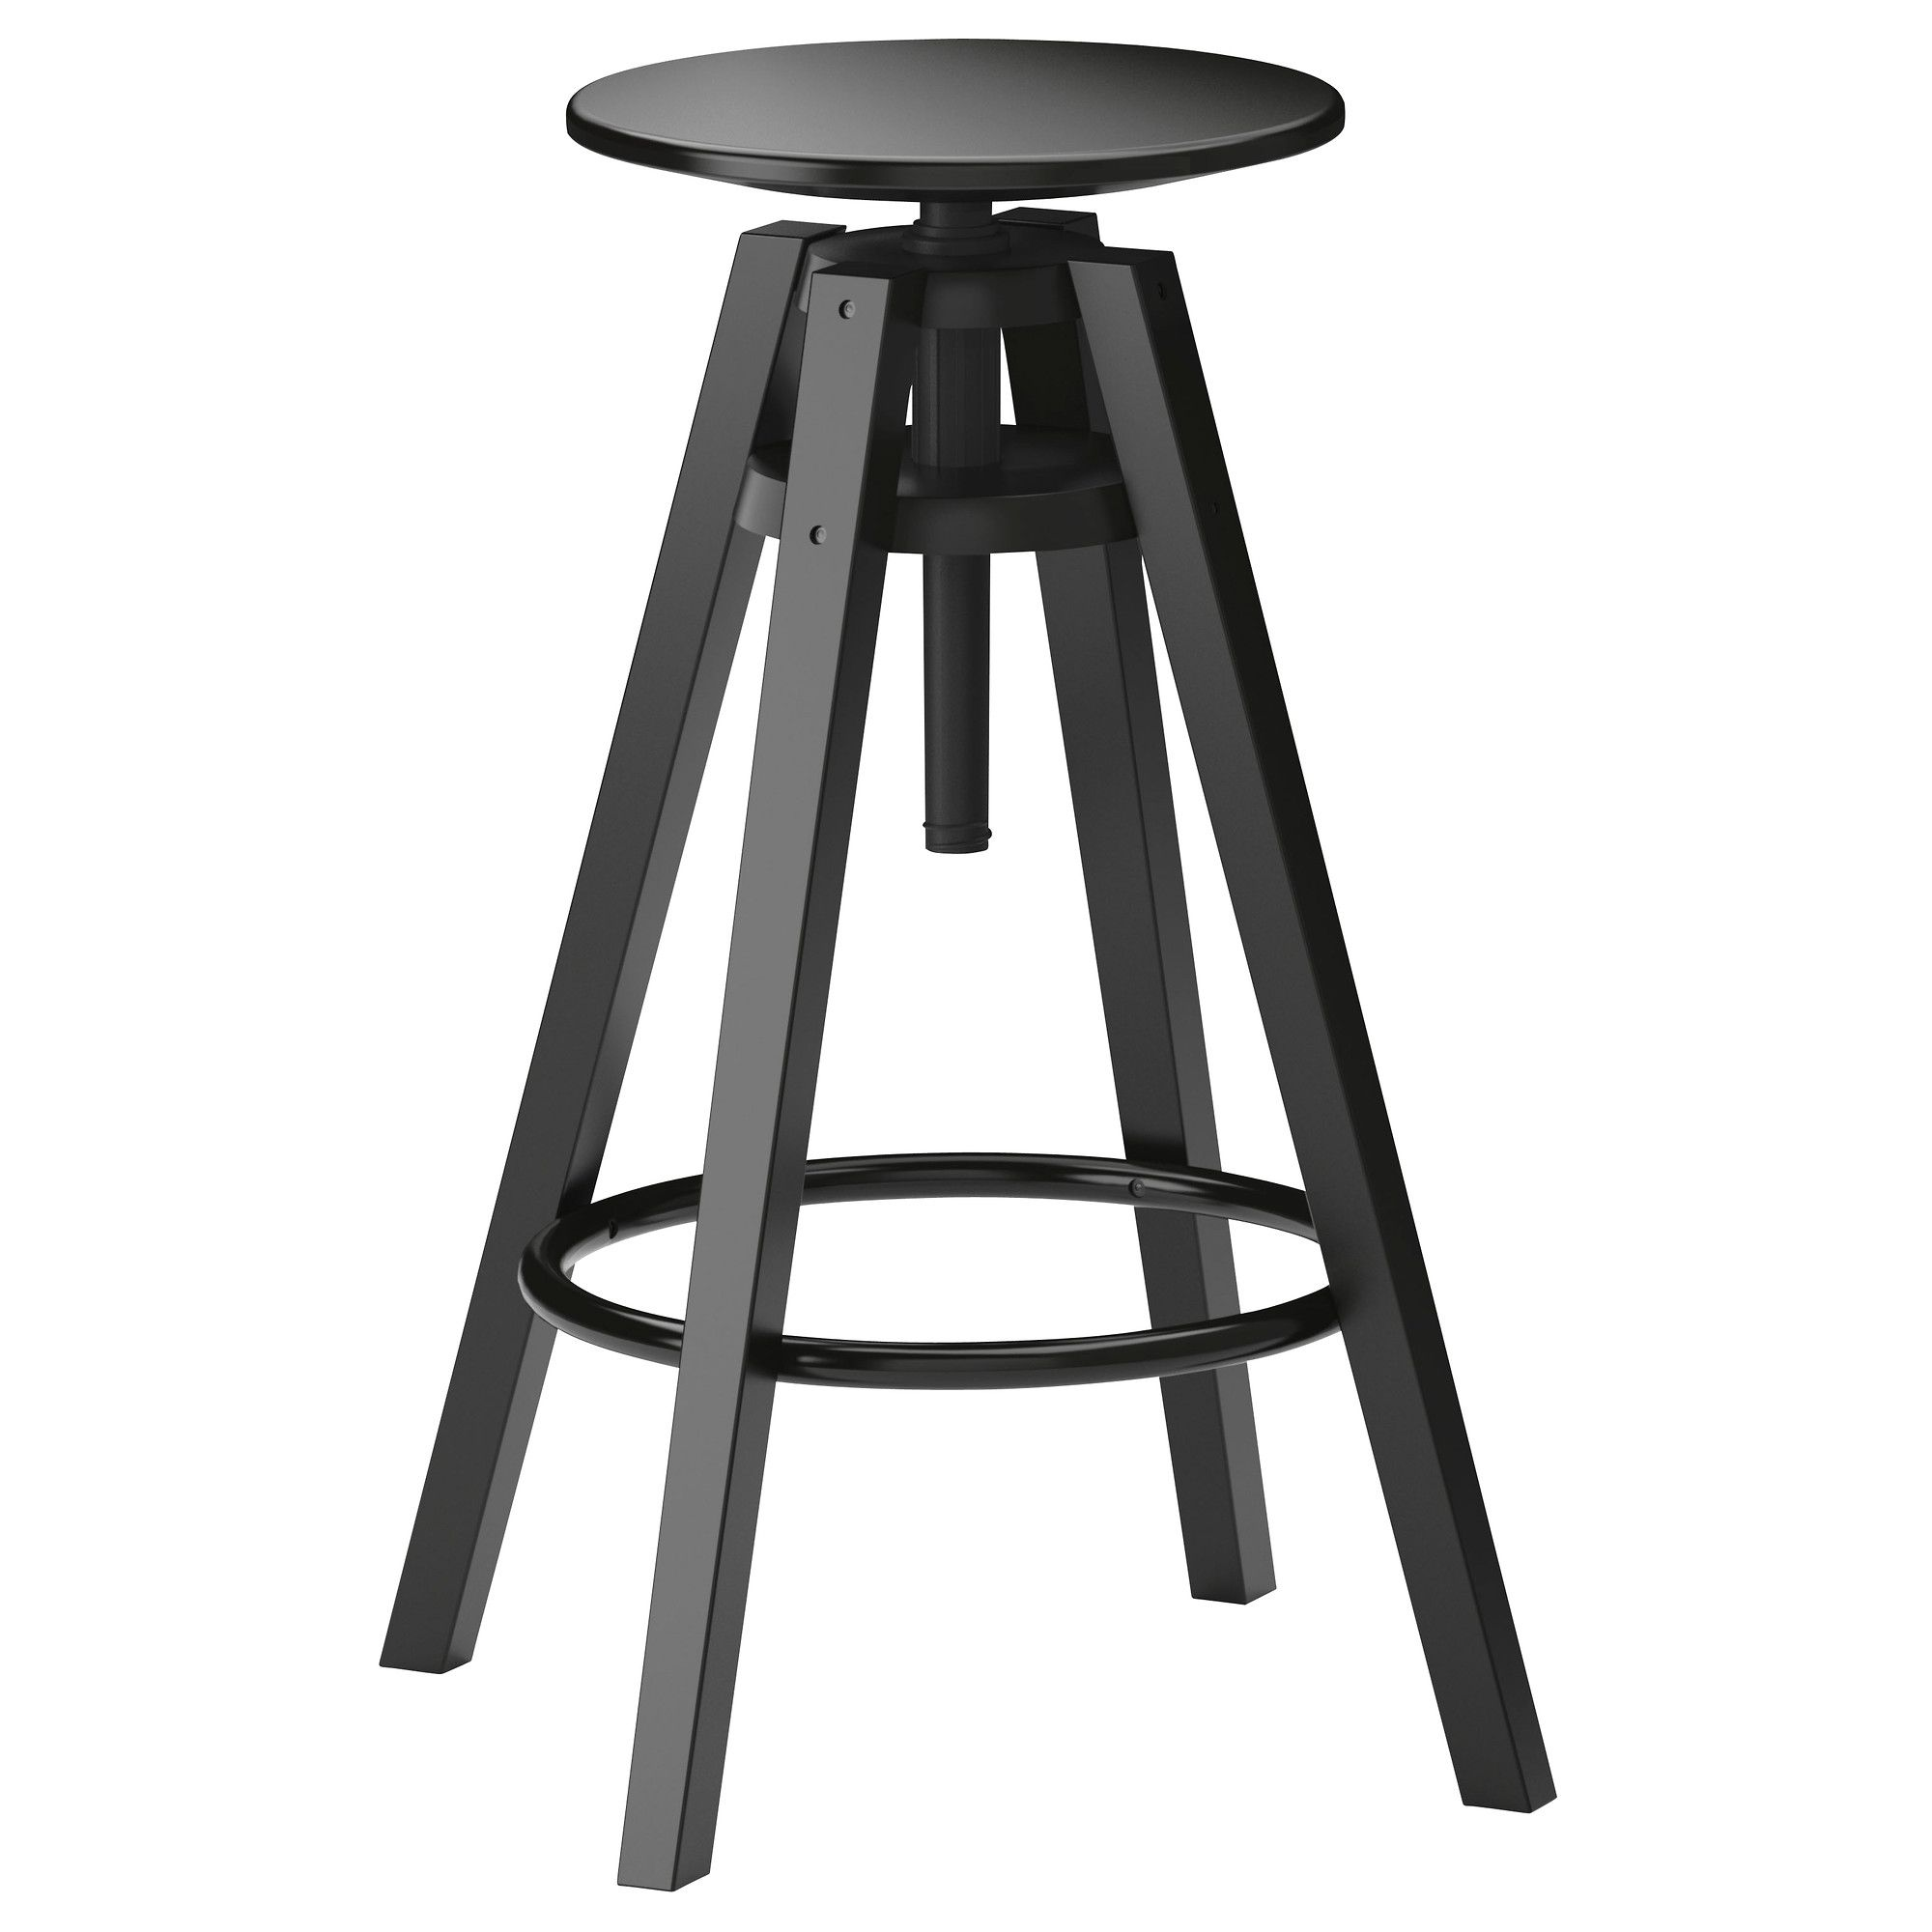 Dalfred Bar Stool Ikea 39 99 Seat Diameter 11 3 4 Width 14 5 8 Depth 19 Suitable For Heights Between 35 And 43 1